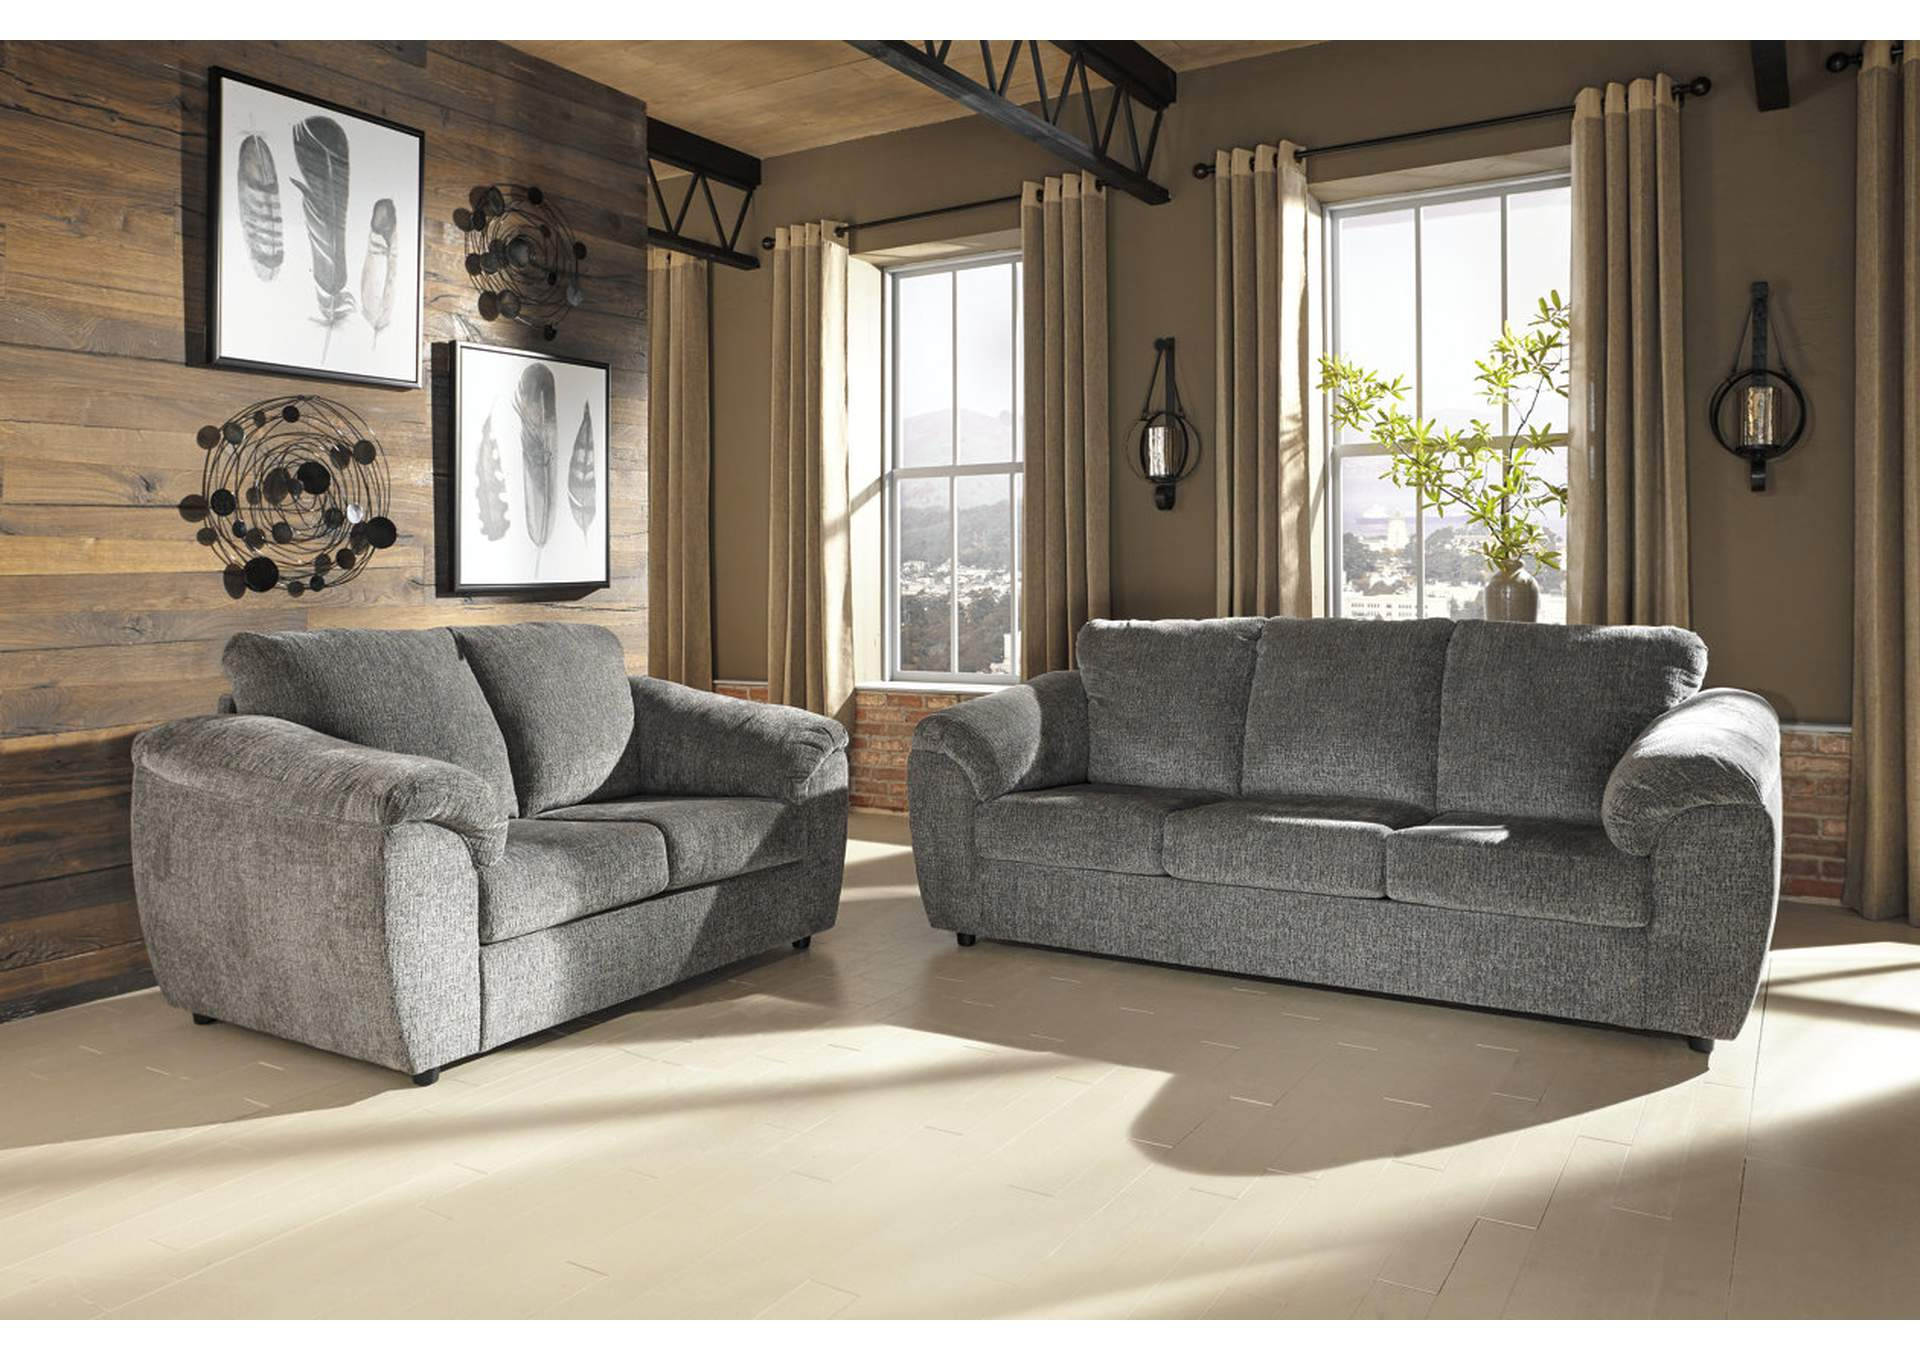 Merveilleux Azaline Slate Sofa U0026 Loveseat,Signature Design By Ashley